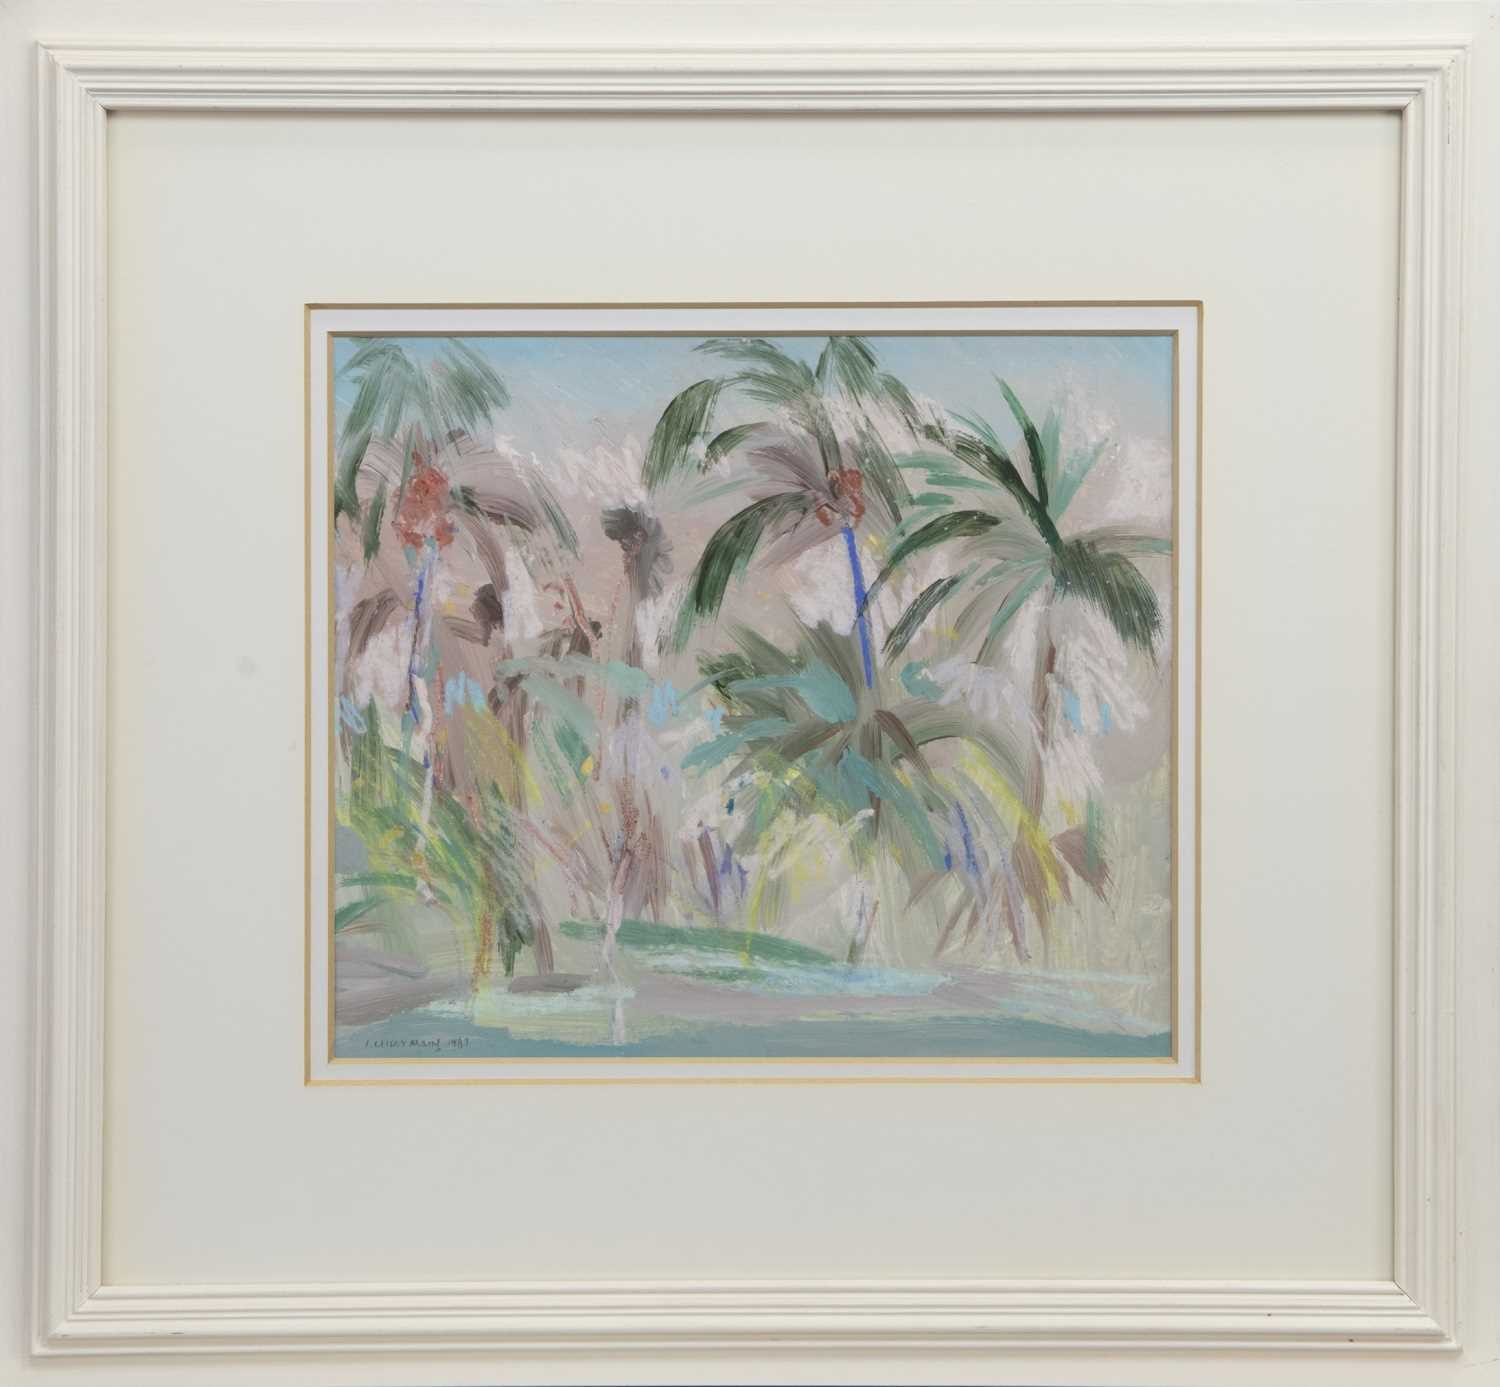 Lot 517 - PALM TREES, WEST GULF BEACH, A MIXED MEDIA BY IRENE LESLEY MAIN